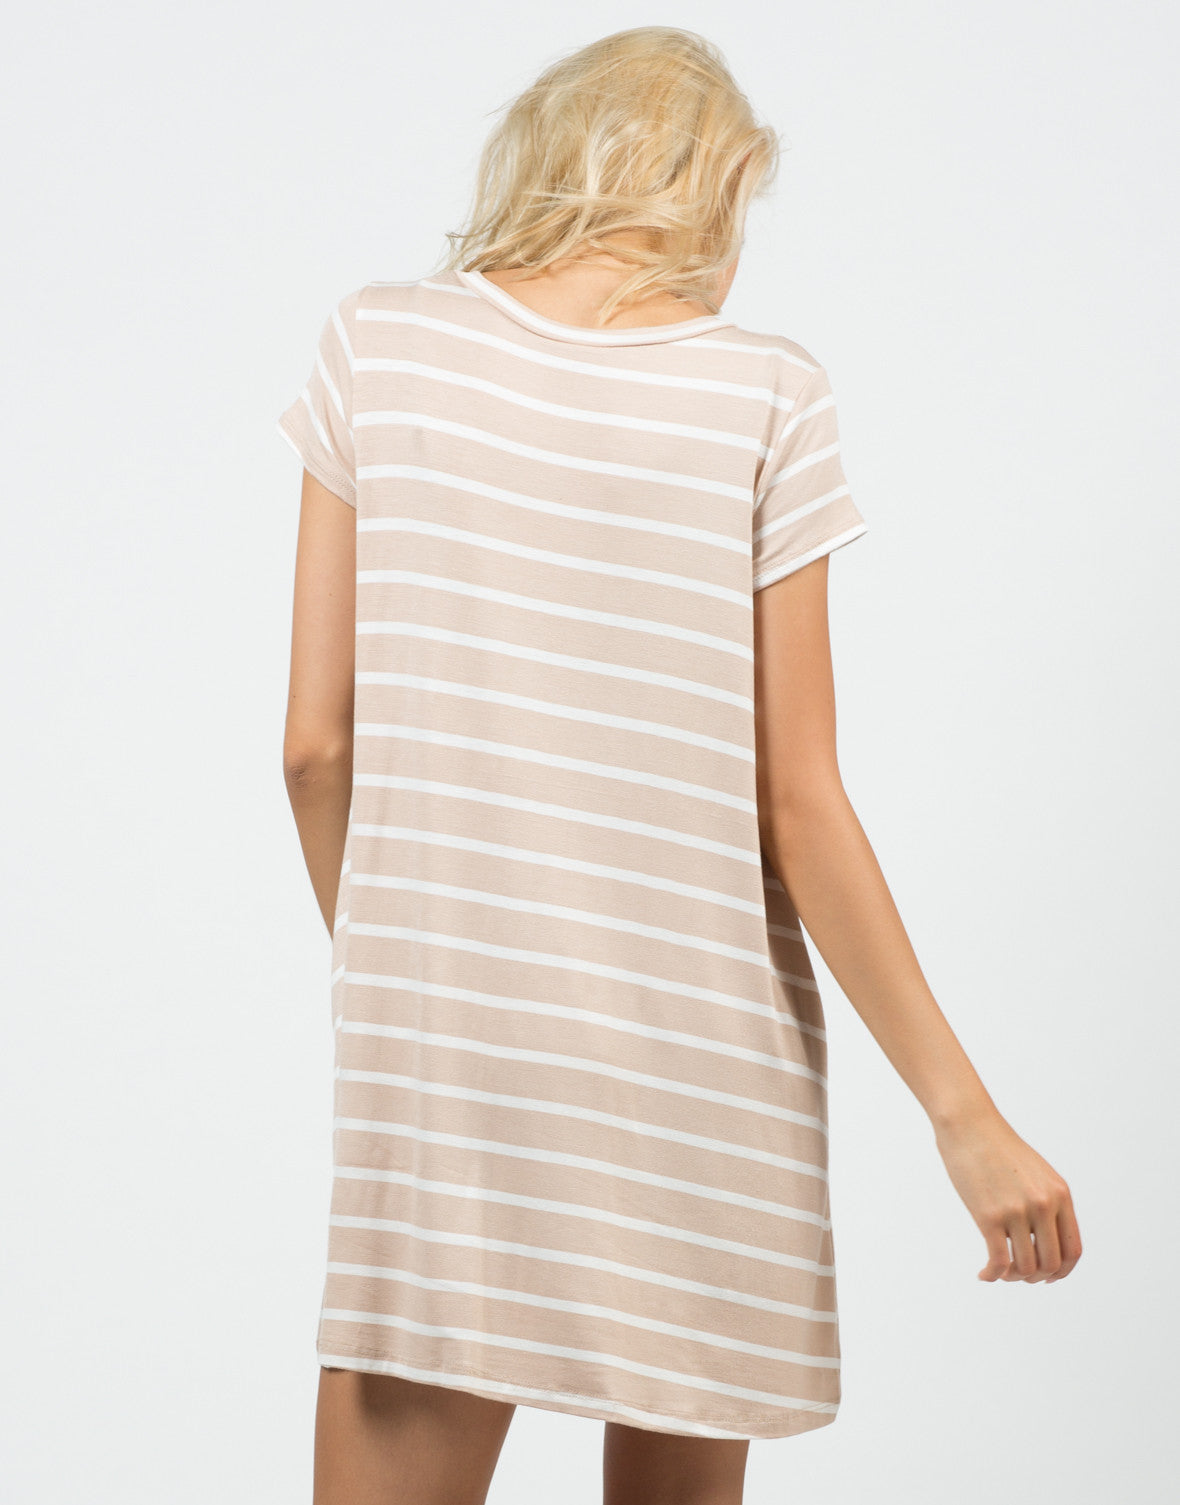 Back View of Jersey Striped Dress